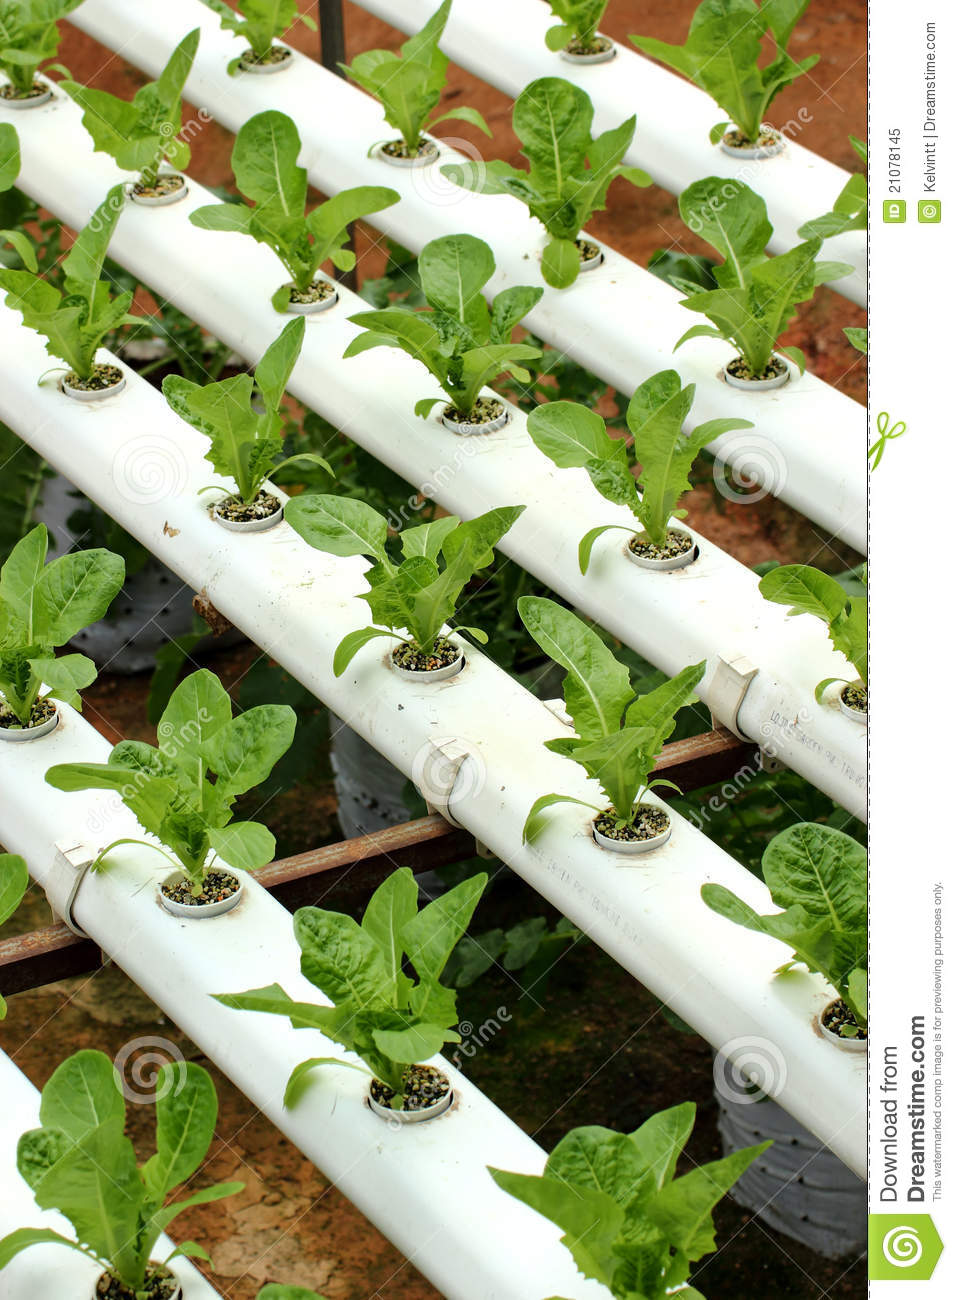 Image Result For Hydro Seeds For Sale